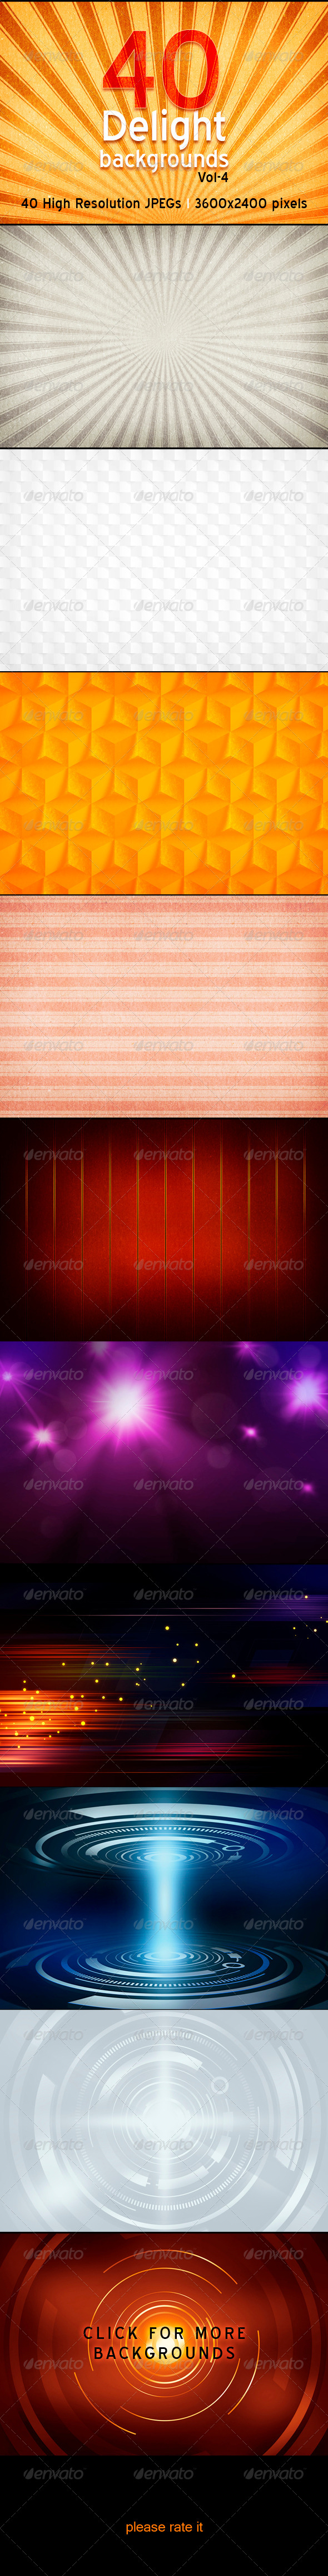 Delight Backgrounds Vol-4